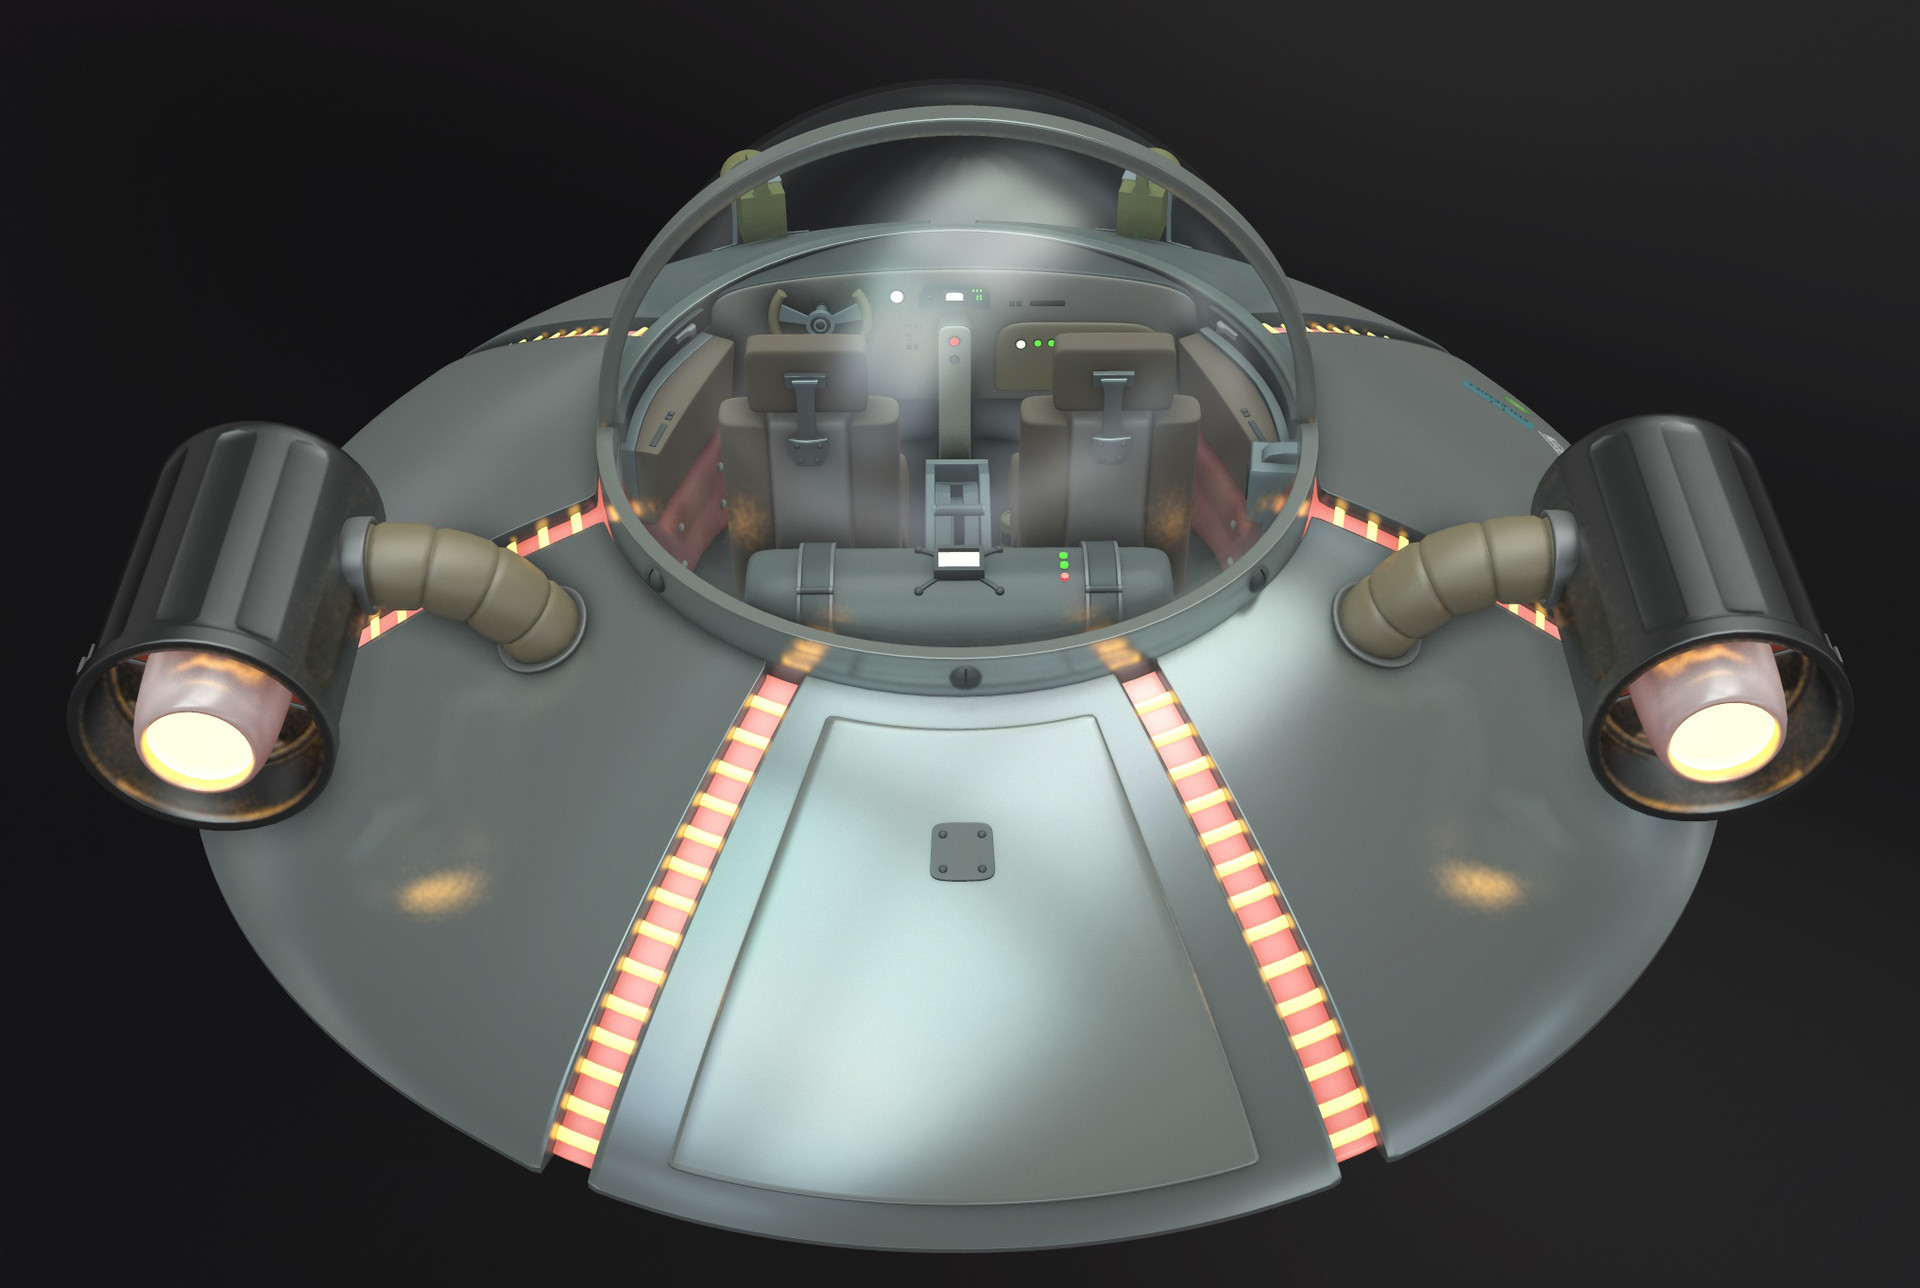 ArtStation - Rick and Morty flying saucer, Giuliano Grassi